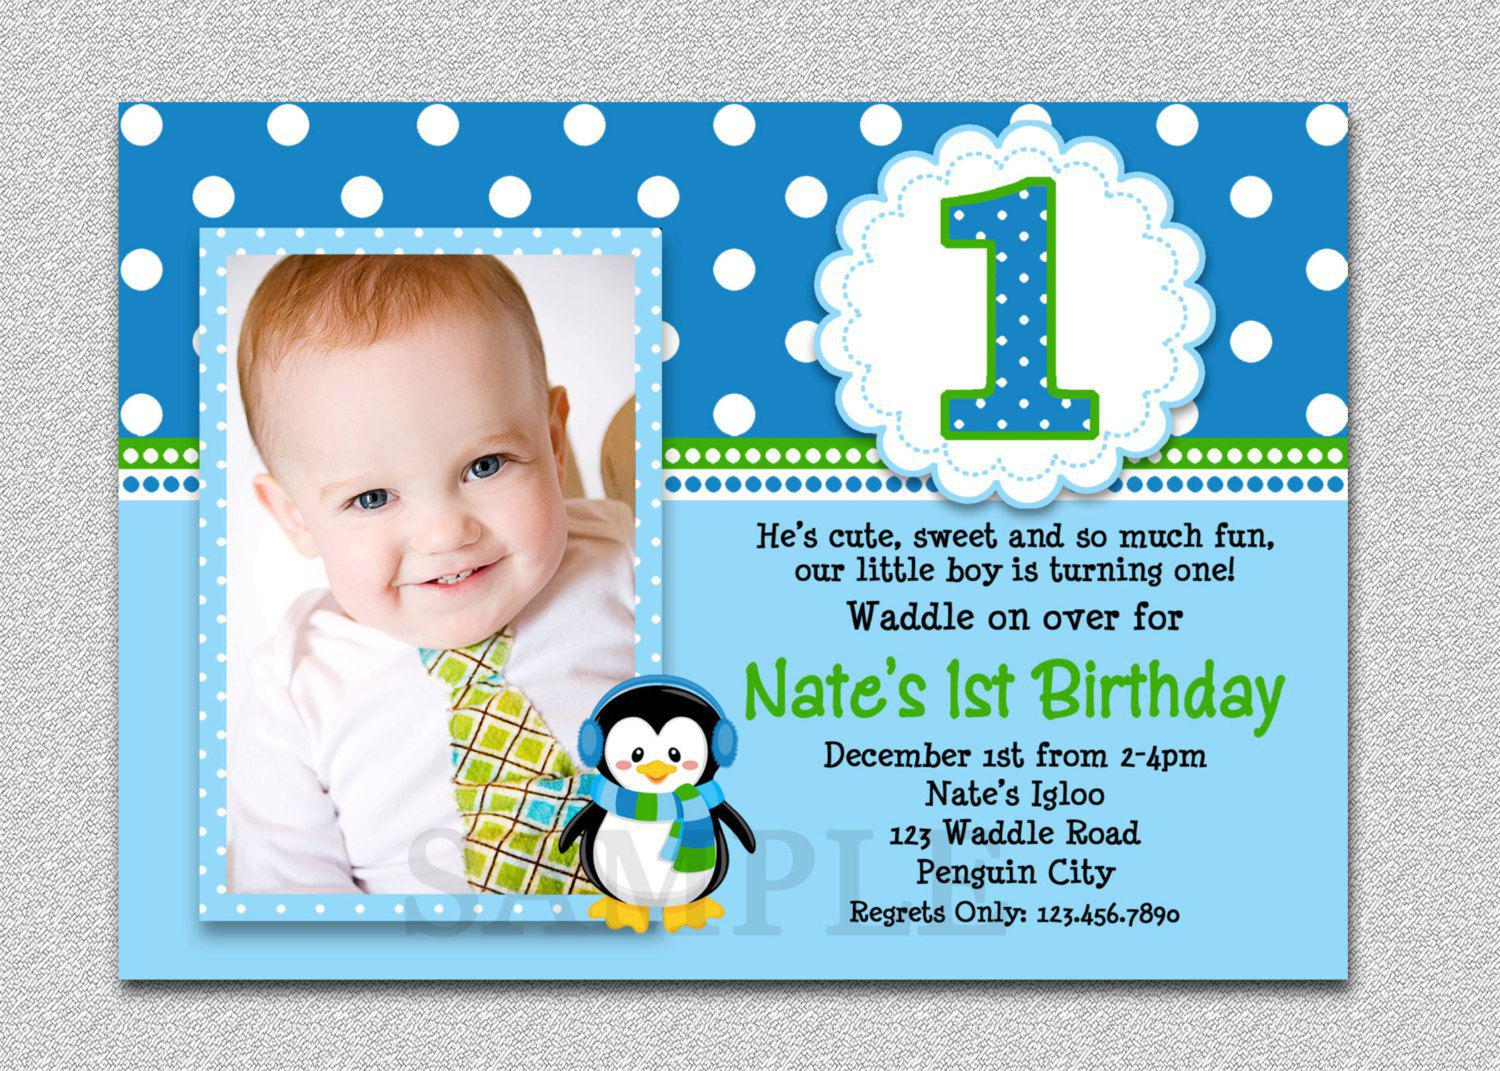 16 best first birthday invites printable sample templates source purpletrail first birthday invitations for kids birhday invites create stopboris Image collections